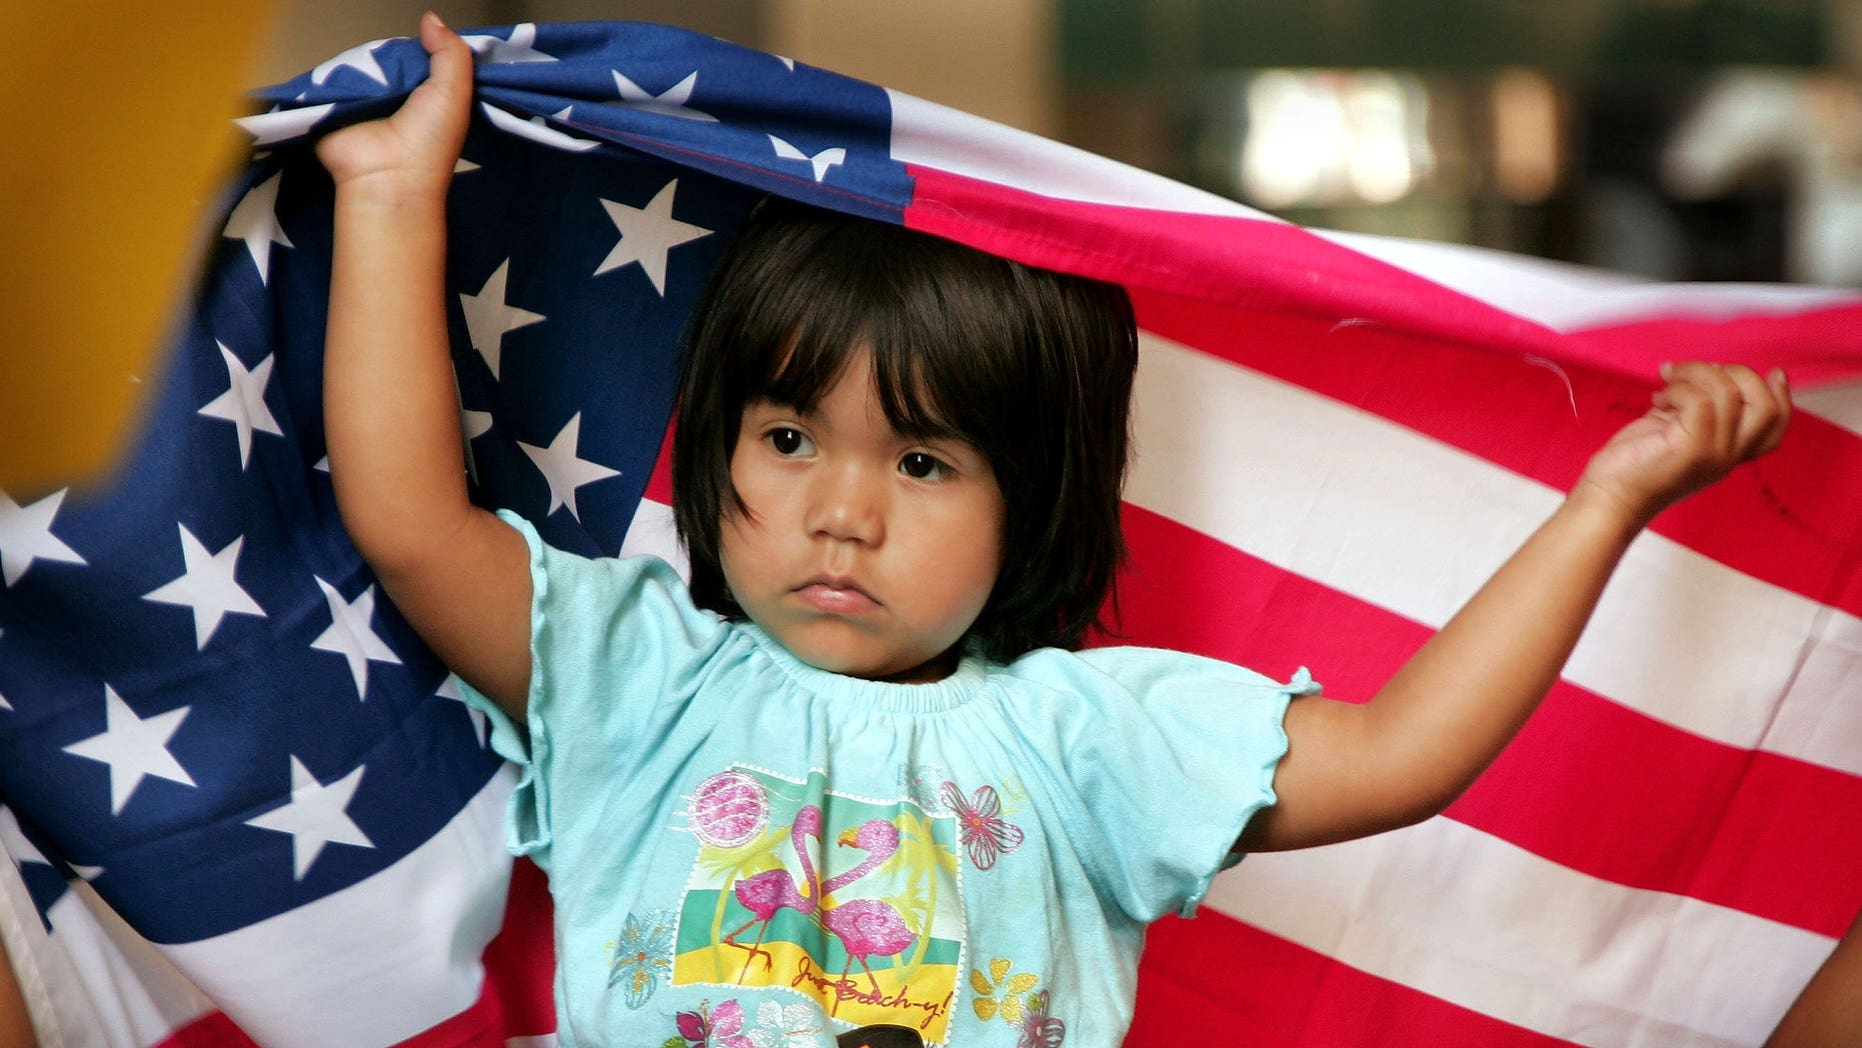 CHICAGO - JULY 31:  Ana Sari, 3, sits on her father's shoulders as they demonstrate outside the building that houses immigration court along with family and friends of IFCO System employees as they await word on the deportation hearings July 31, 2006 in Chicago, Illinois. Twenty-six illegal immigrants were arrested in April in Chicago during a nationwide sweep of undocumented workers at IFCO Systems. All fifteen of the Chicago IFCO Systems employees who appeared in court today were granted a one year extension in their cases.  (Photo by Scott Olson/Getty Images)